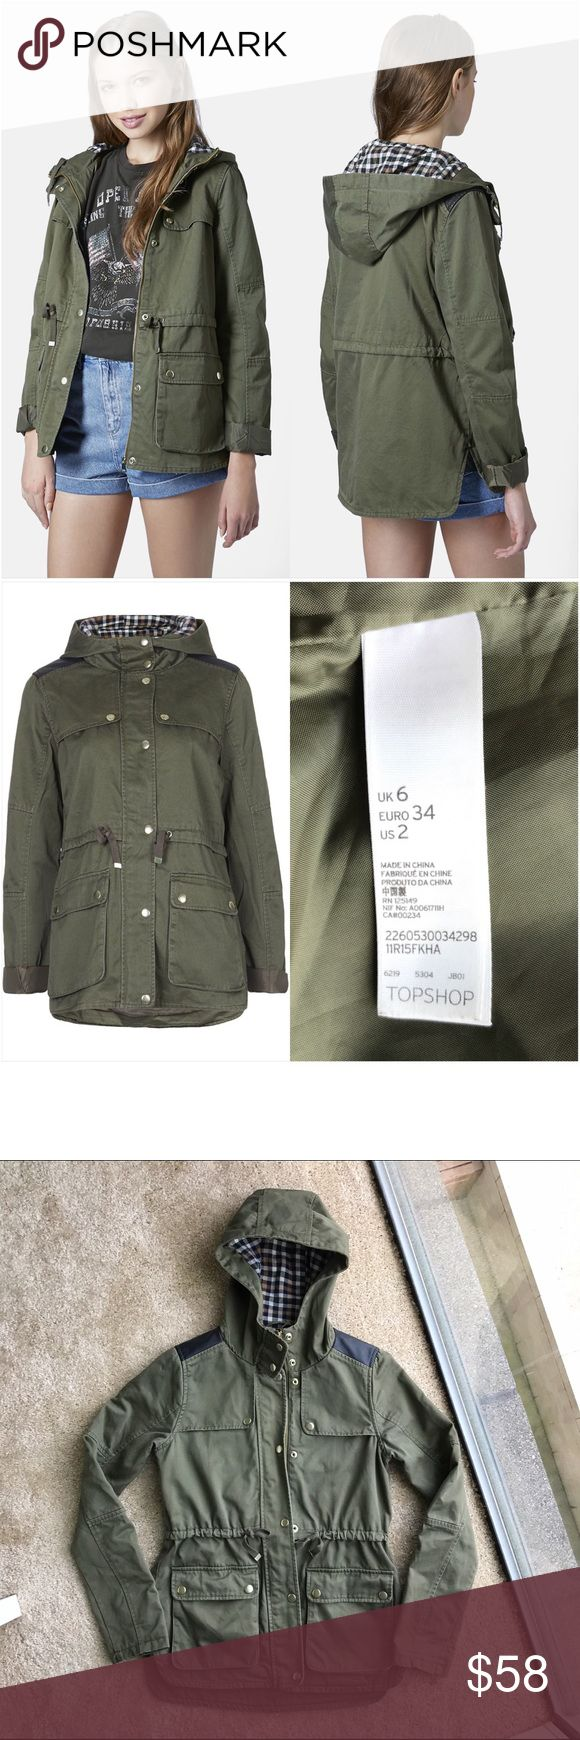 """Topshop Hooded Lightweight Khaki Jacket Parka US 2 Topshop Hooded Lightweight Khaki Jacket Parka. Size US 2 (UK 6). Colour: khaki. Made of 100% cotton. Measurements: from armpit to armpit 18"""", front length 26"""", sleeve length from shoulder seam 24"""". Gently used! No holes or stains! Excellent condition! Open to offers! Topshop Jackets & Coats Utility Jackets"""